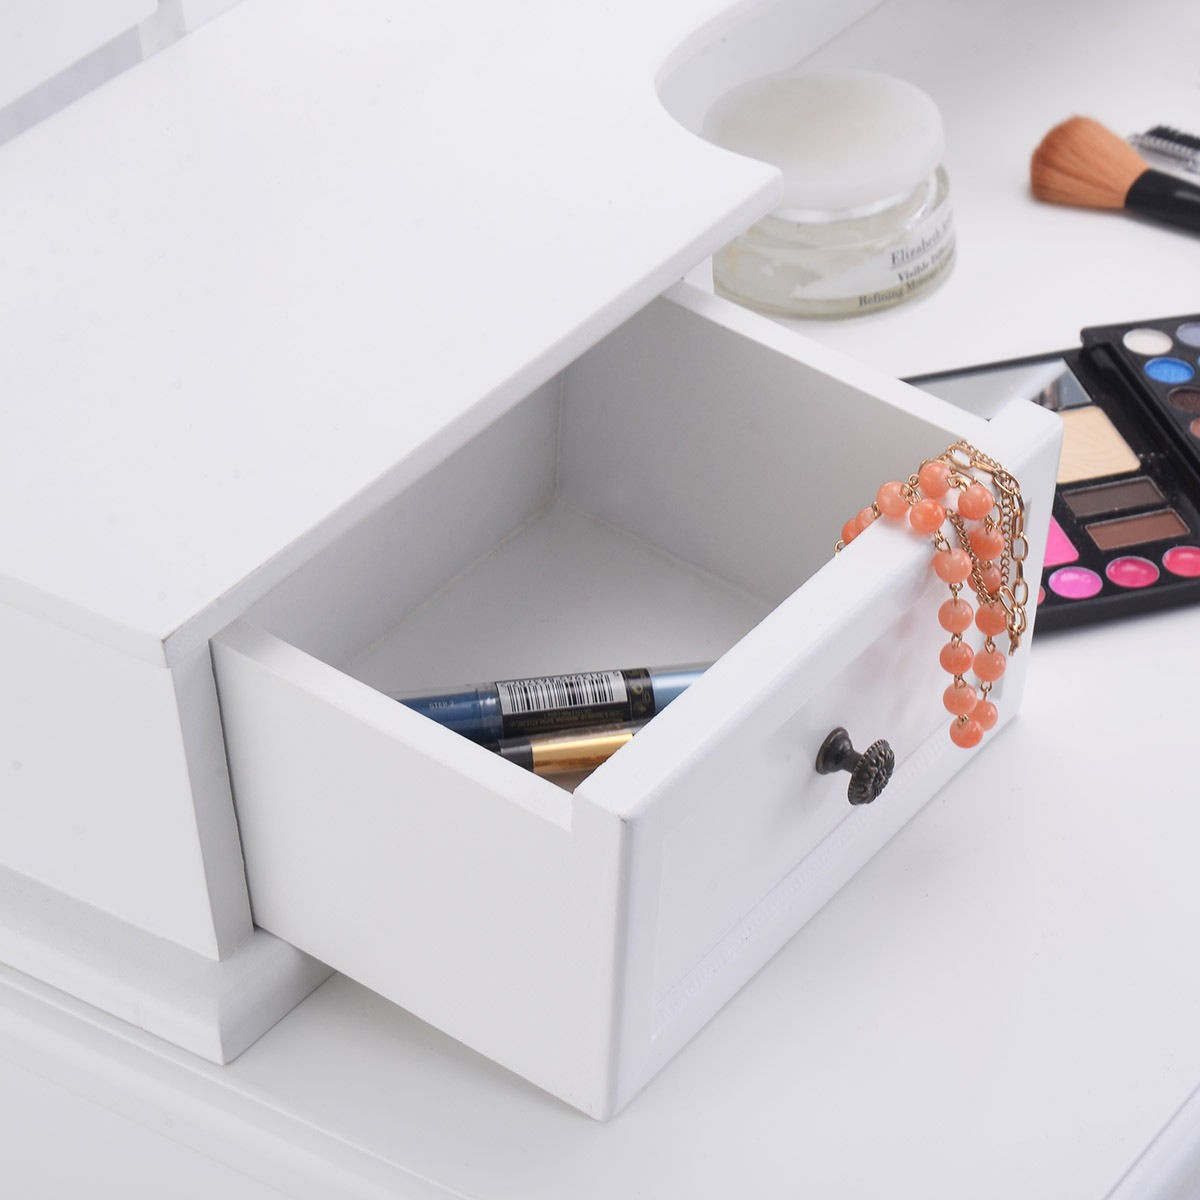 Tri folding mirror wood vanity set makeup table dresser 4 for Foldable beauty table